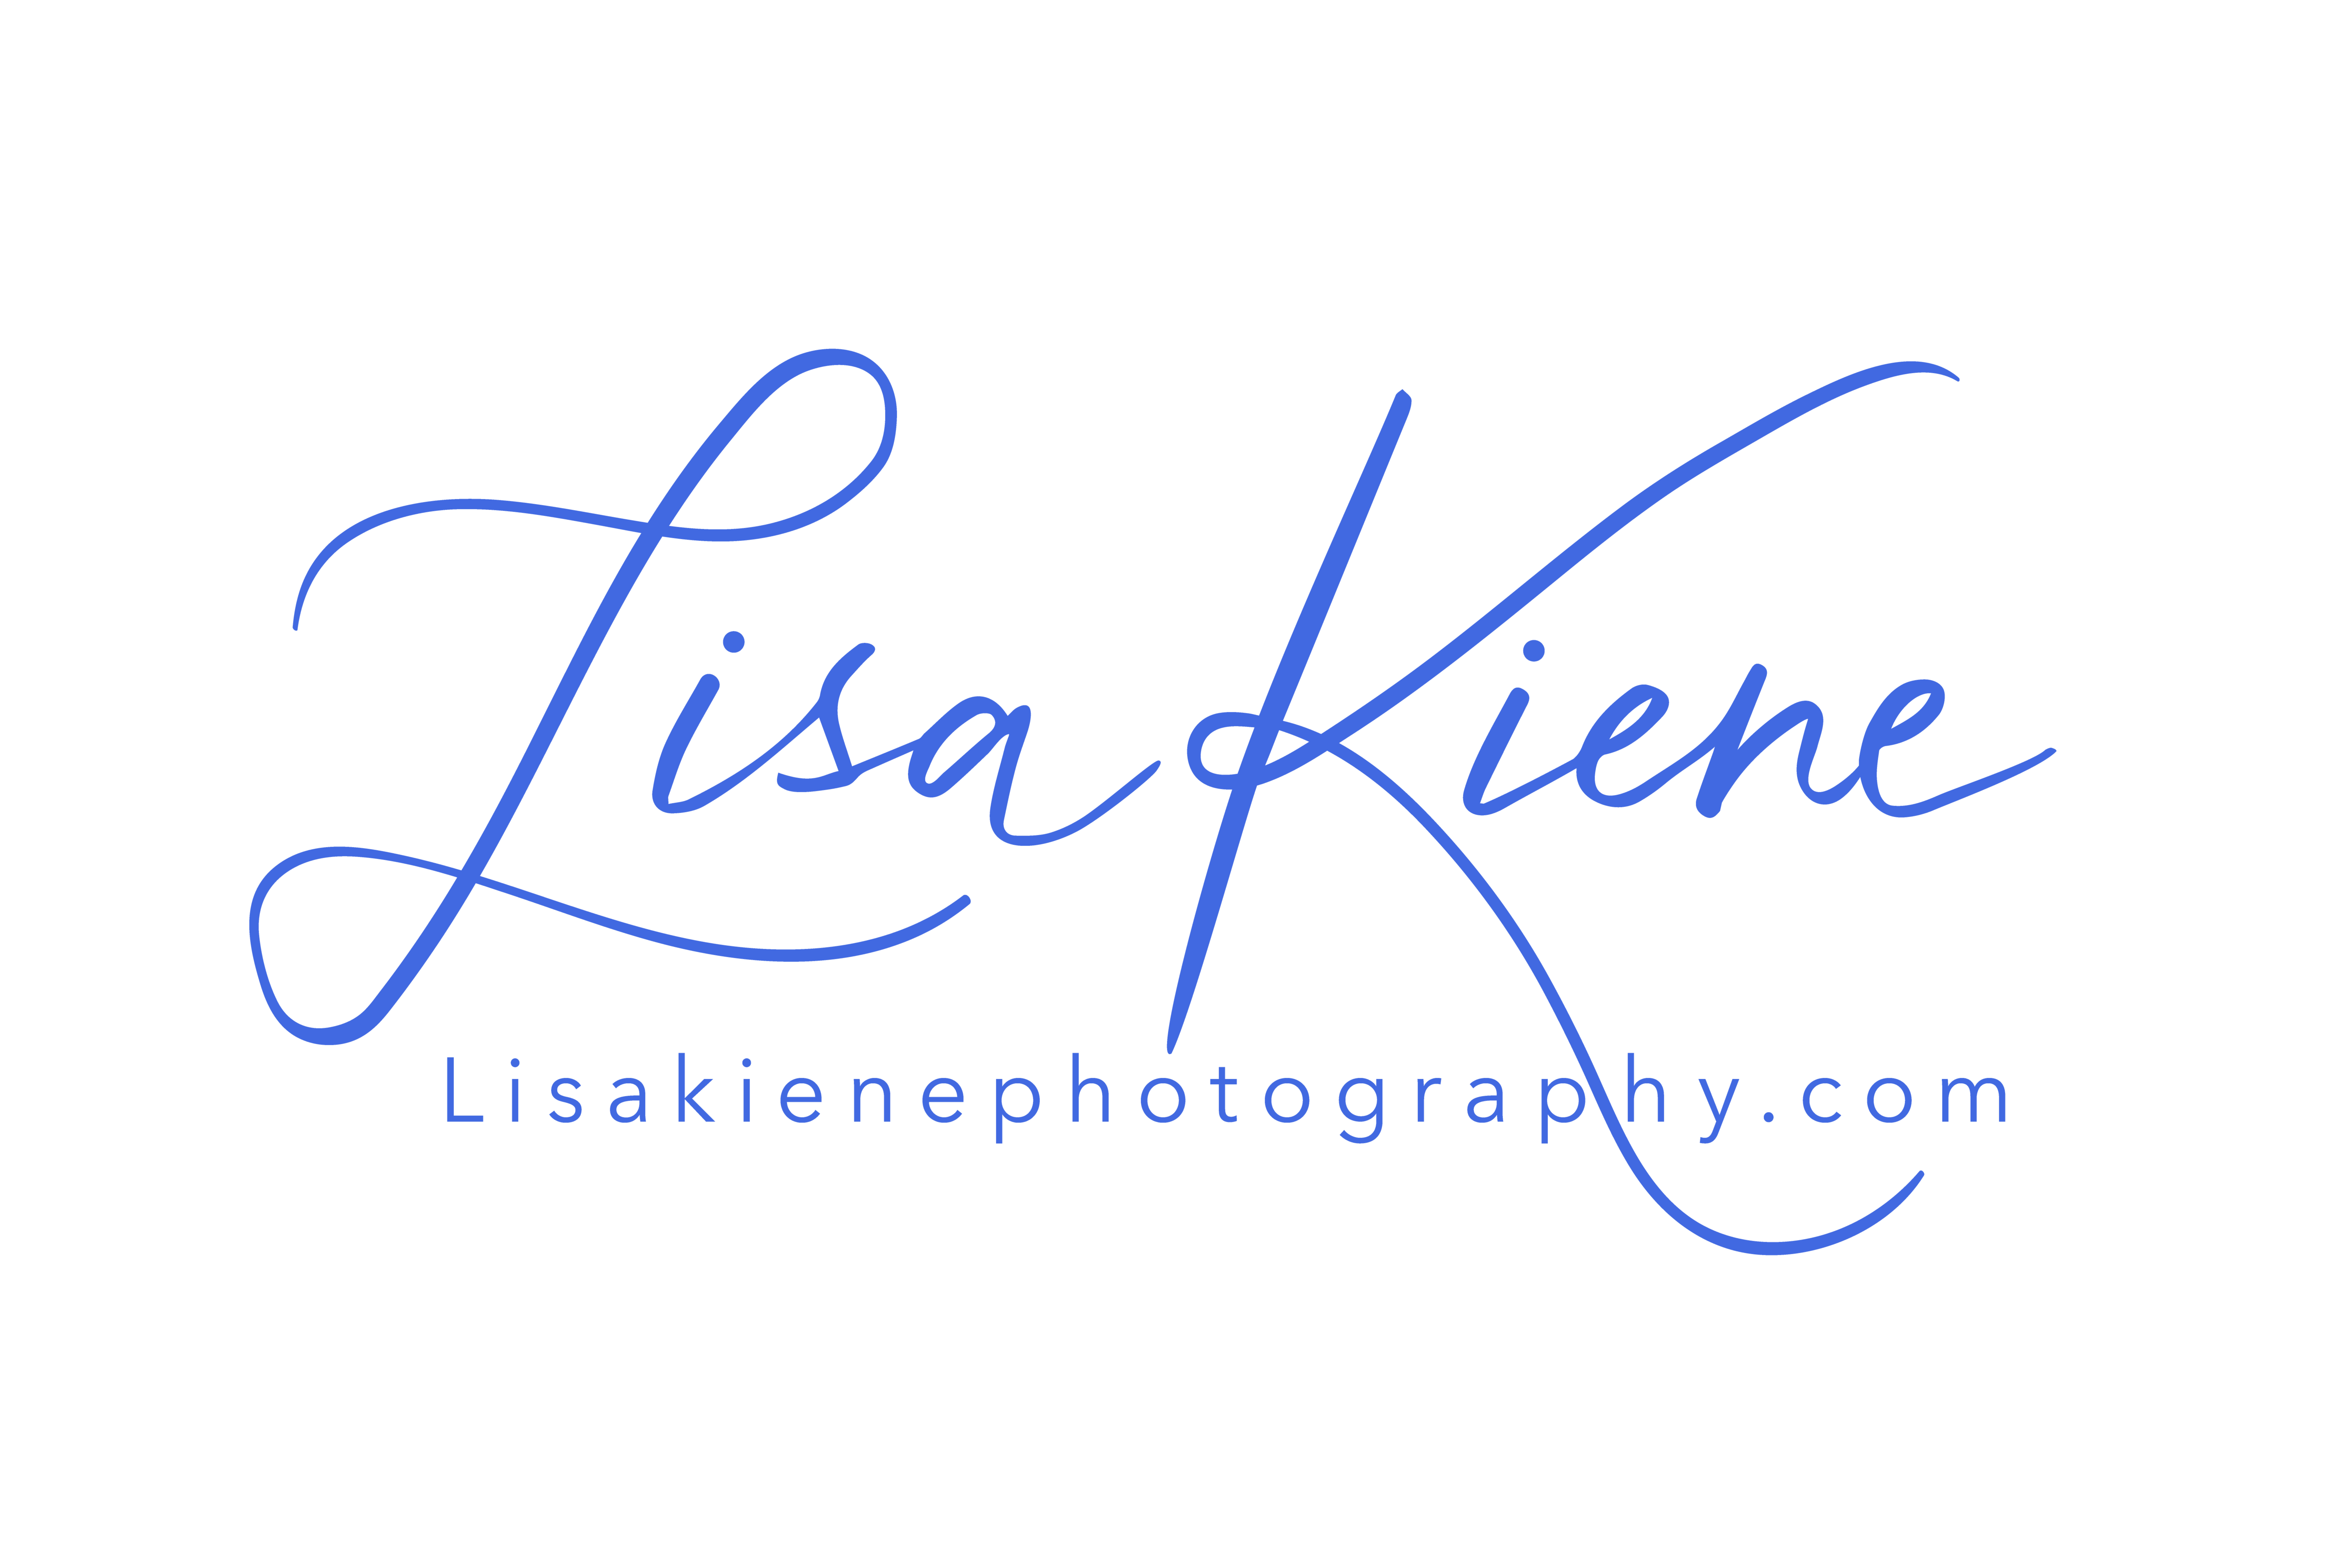 lisa kiene photography